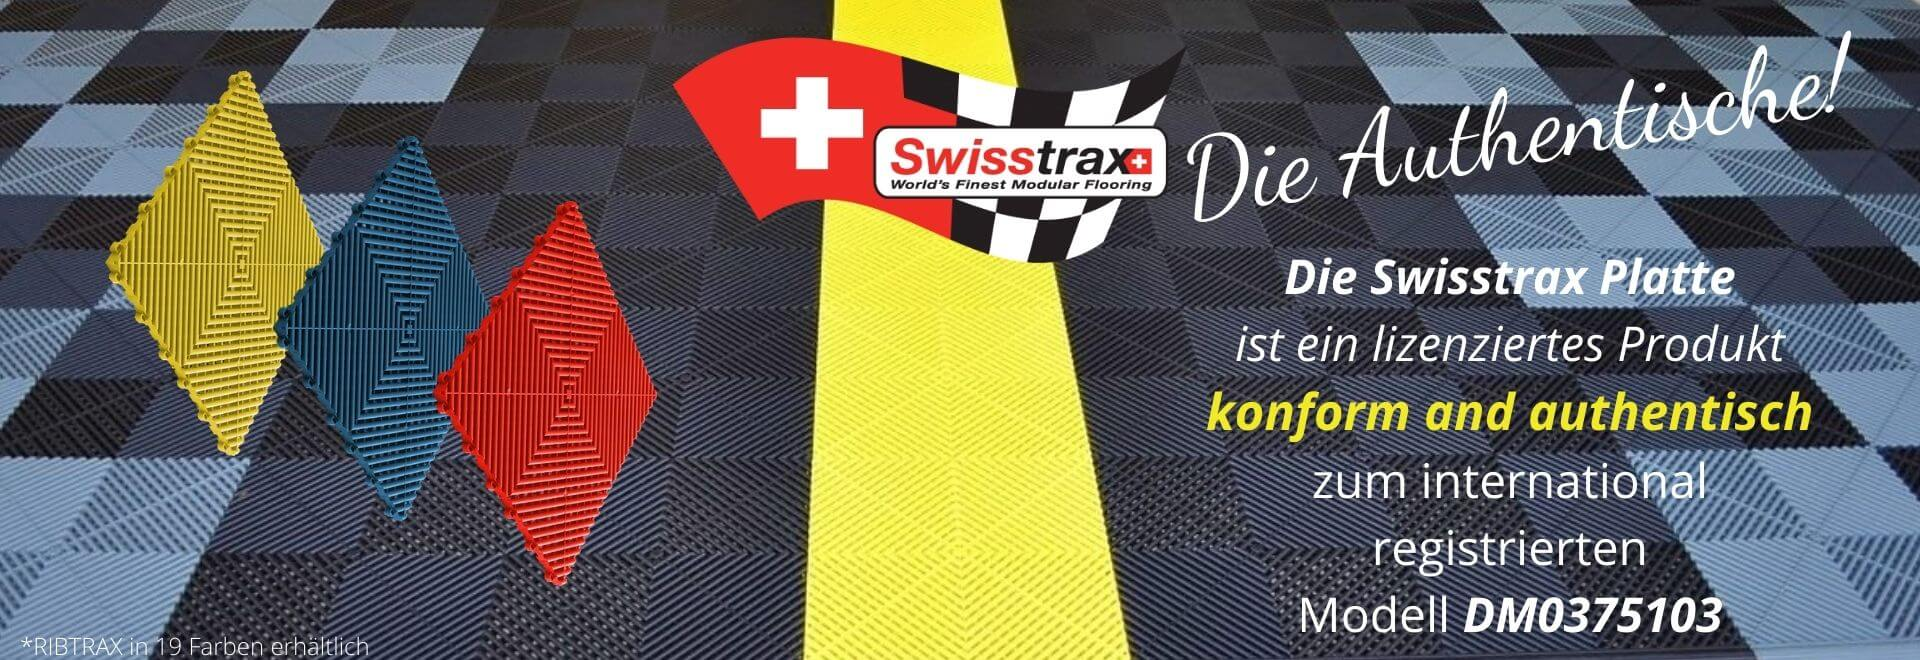 Die-Authentische-swisstrax